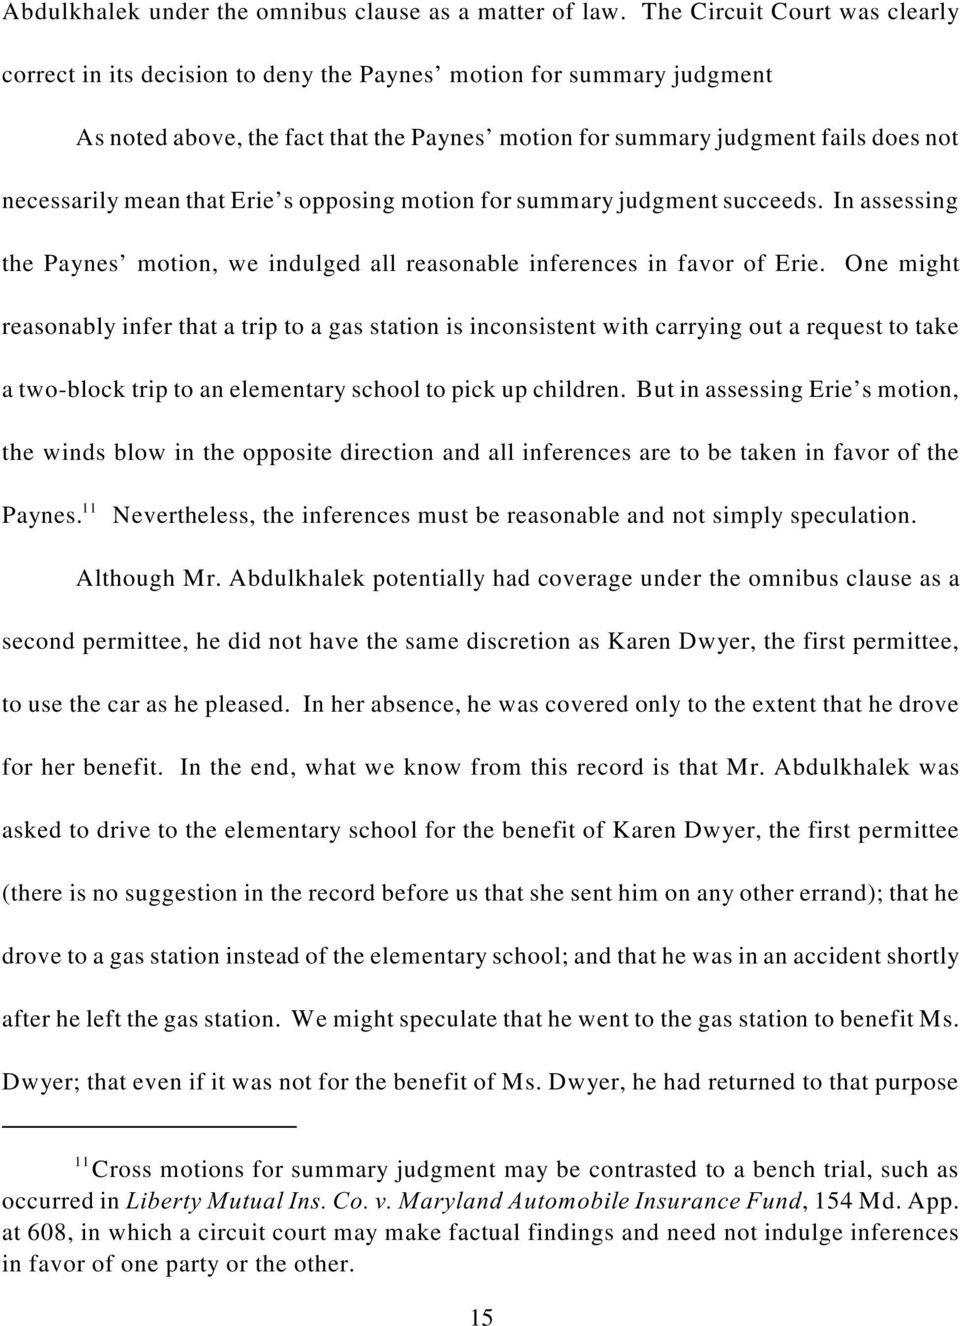 mean that Erie s opposing motion for summary judgment succeeds. In assessing the Paynes motion, we indulged all reasonable inferences in favor of Erie.